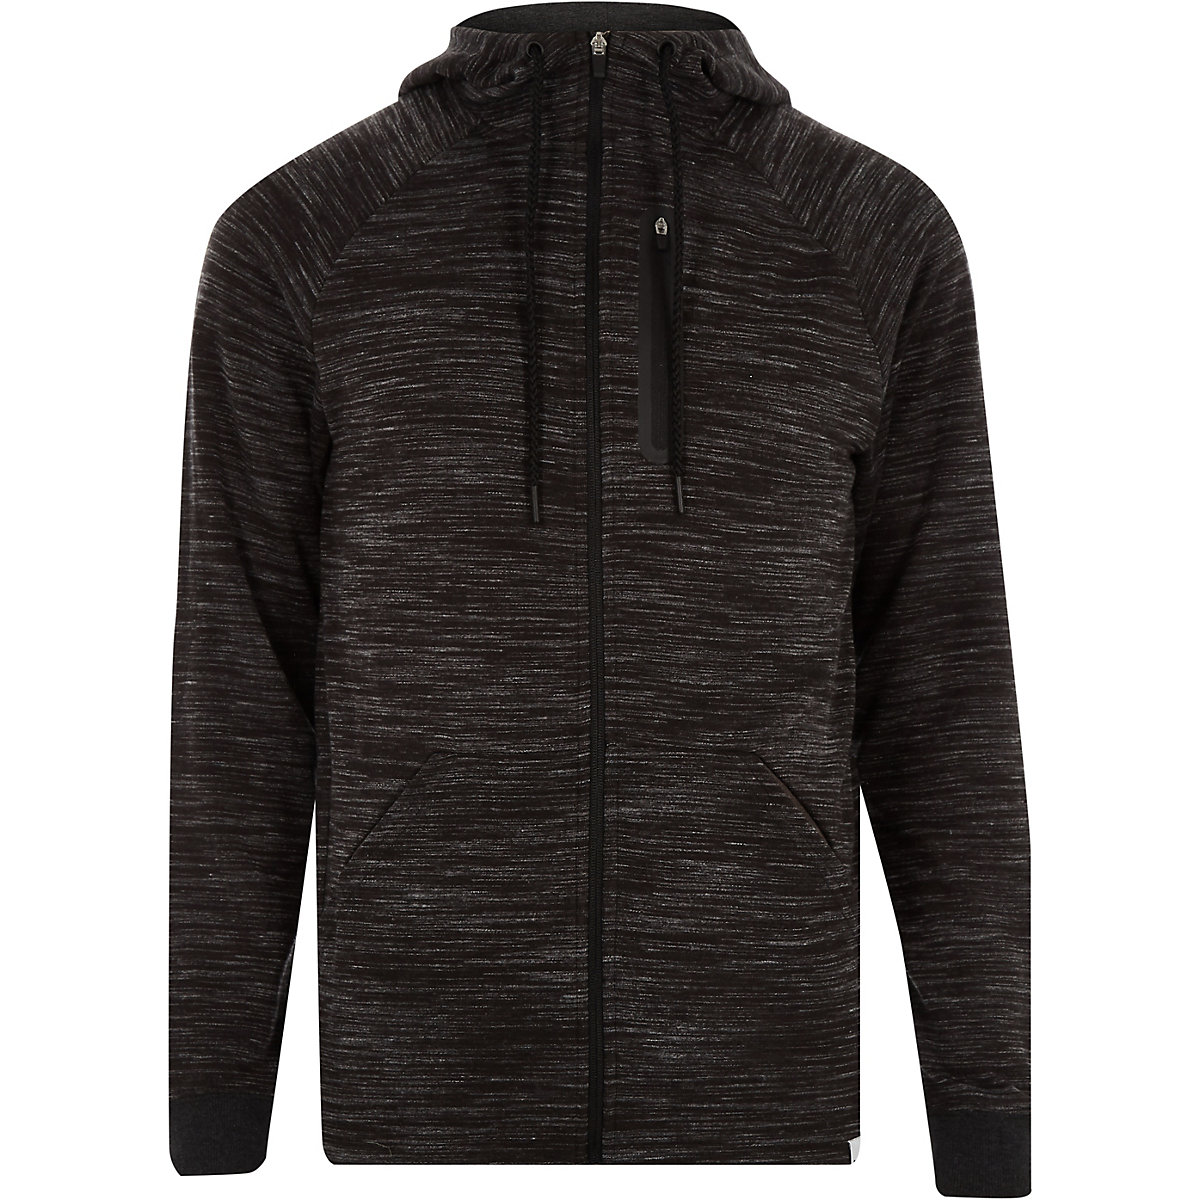 Only & Sons grey zip up hoodie